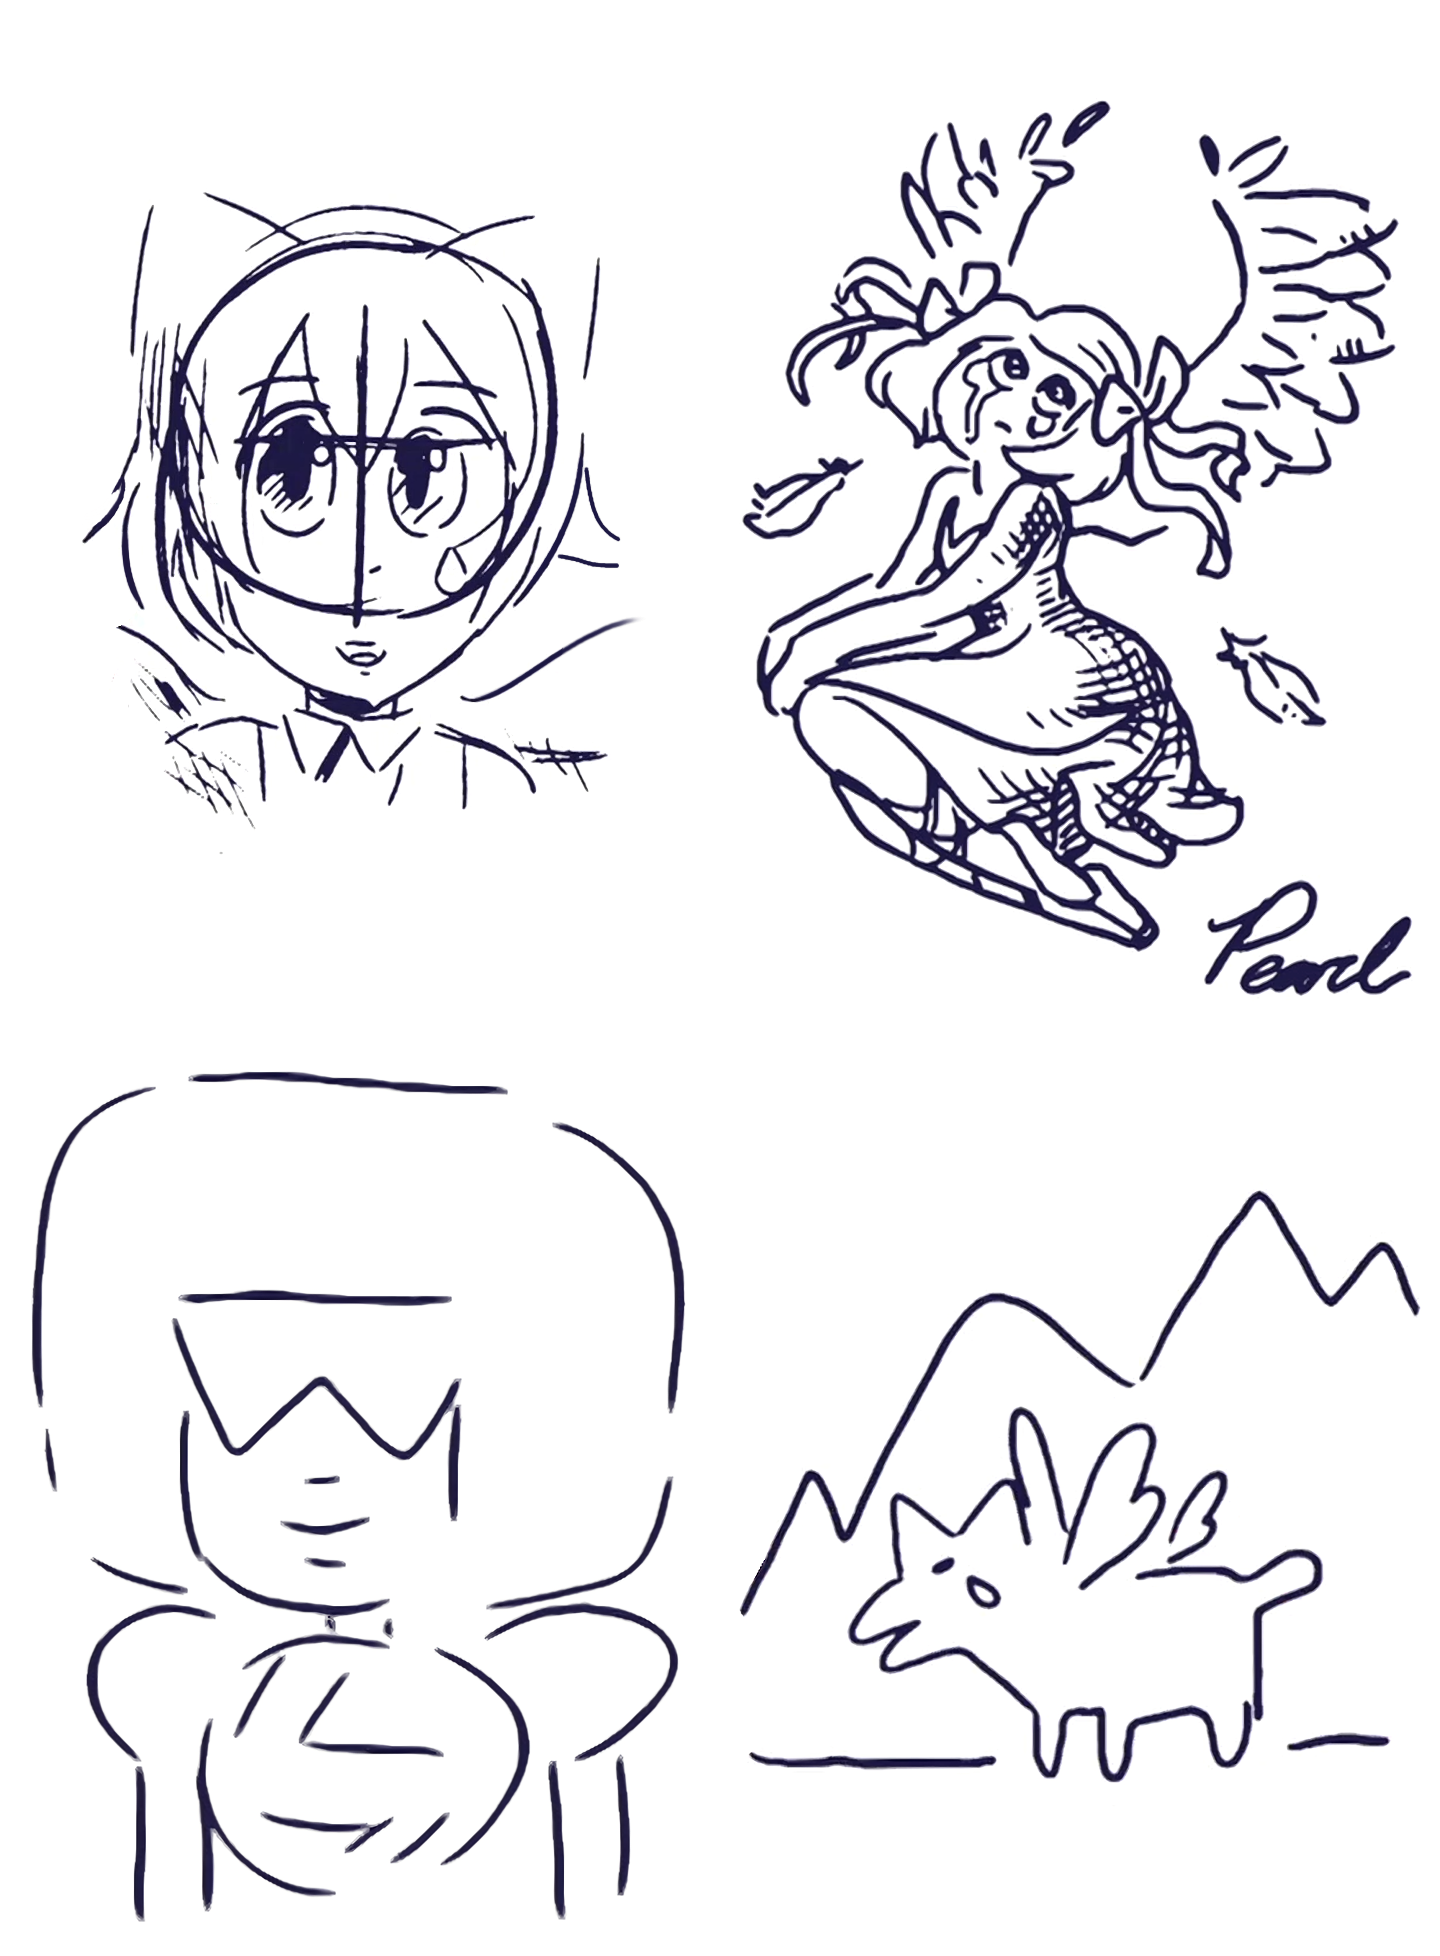 All Three Sketches Of Aquamarine And One Of Garnet Steven